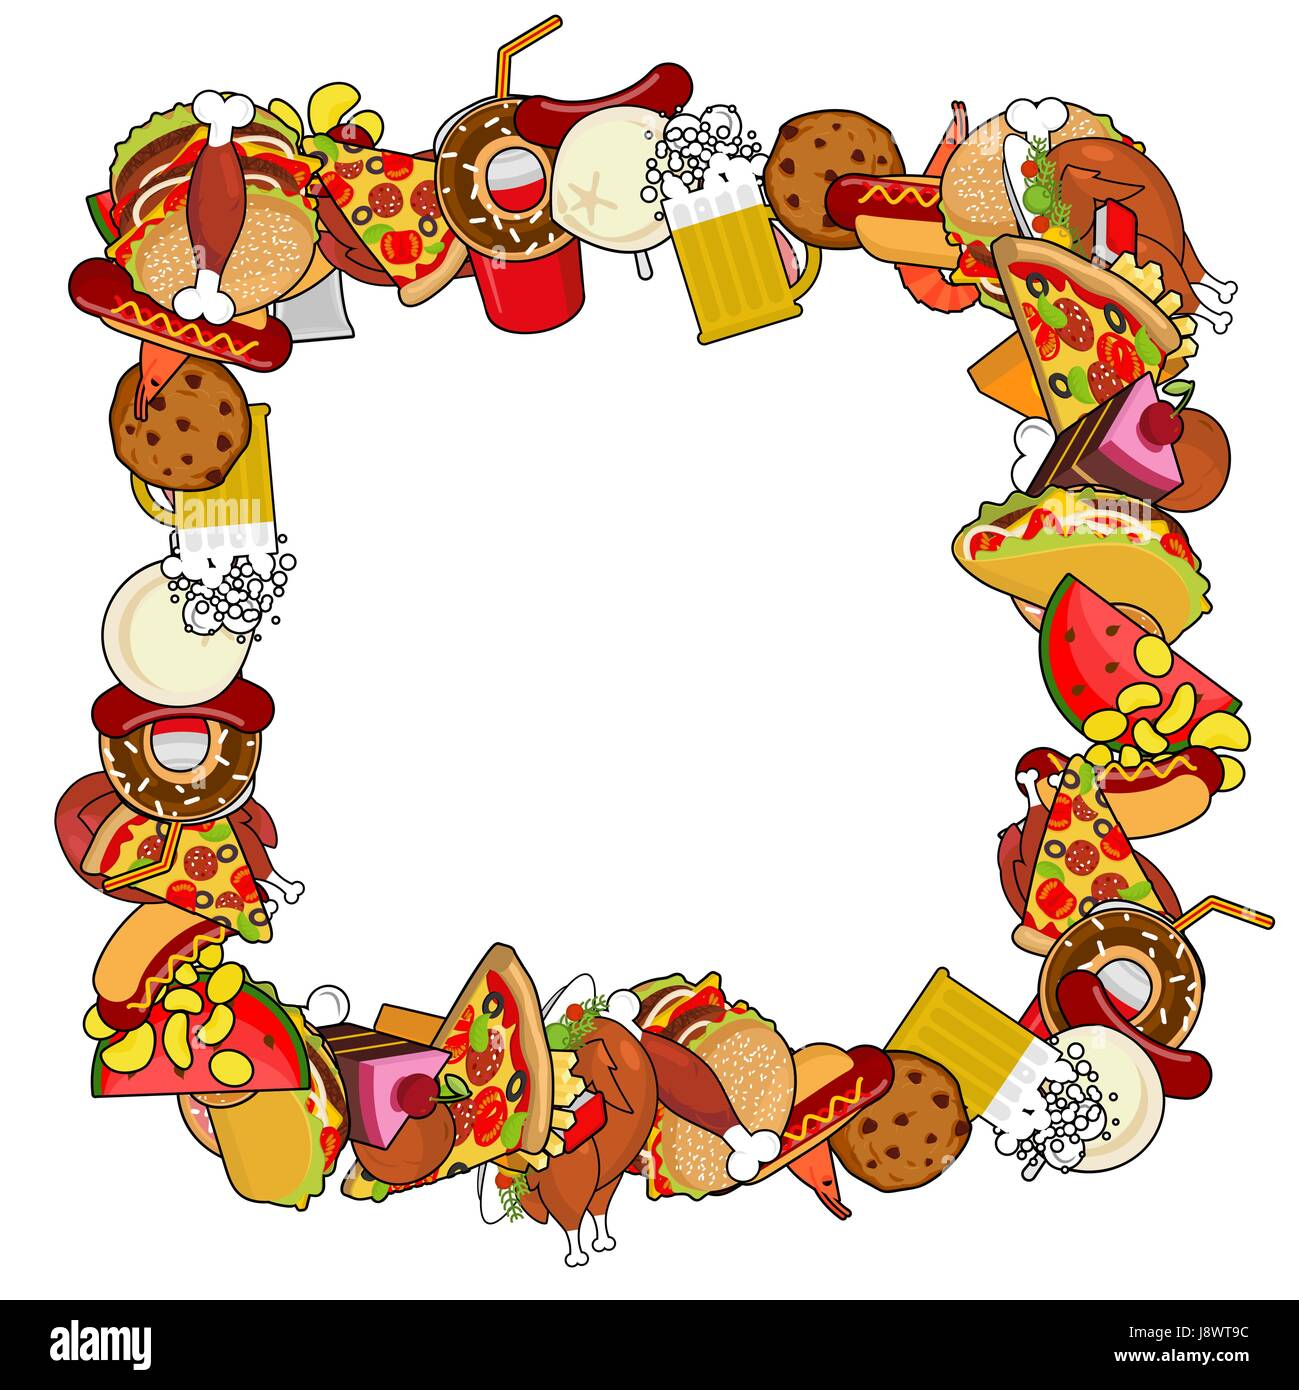 Fast Food Frame Background Of Feed Edible Cadre Pizza And Tacos